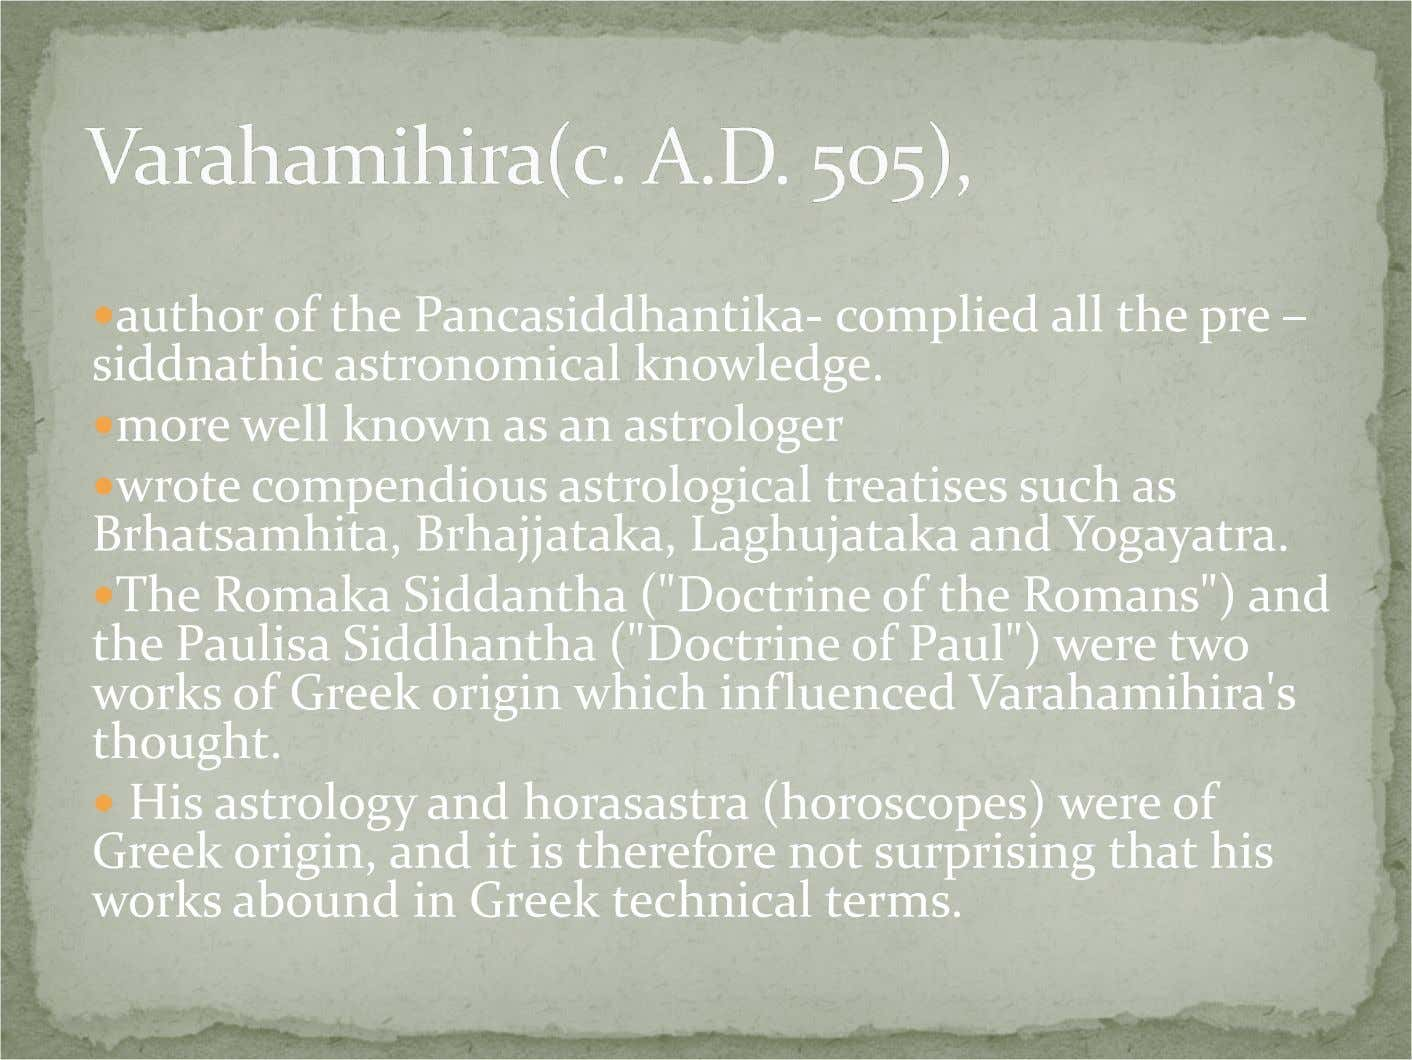 author of the Pancasiddhantika- complied all the pre – siddnathic astronomical knowledge. more well known